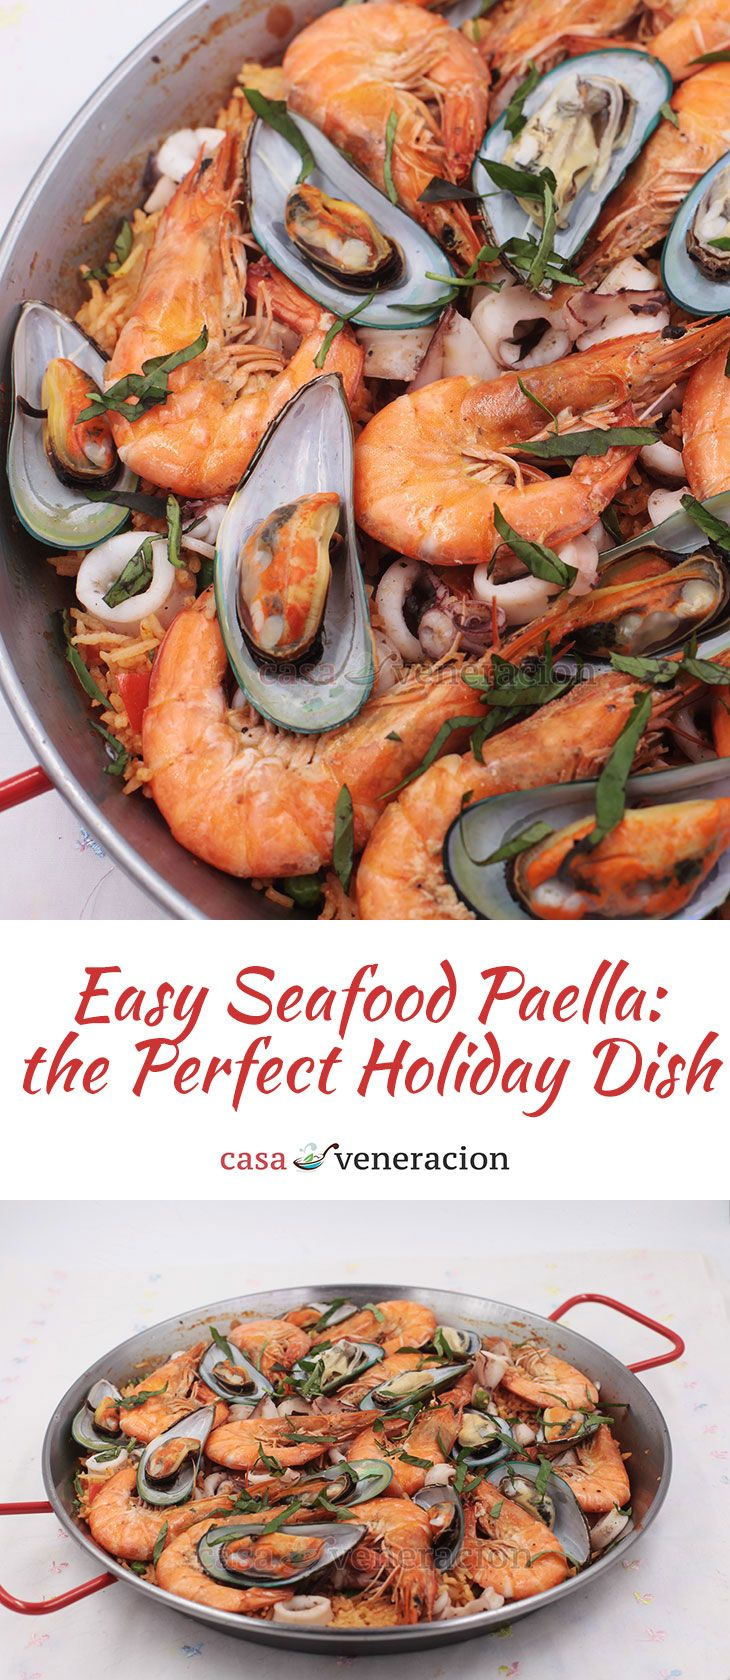 For rice-loving Filipino-Americans who like to pair their Thanksgiving turkey with non-traditional side dishes, here's a non-traditional easy seafood paella recipe. via @casaveneracion